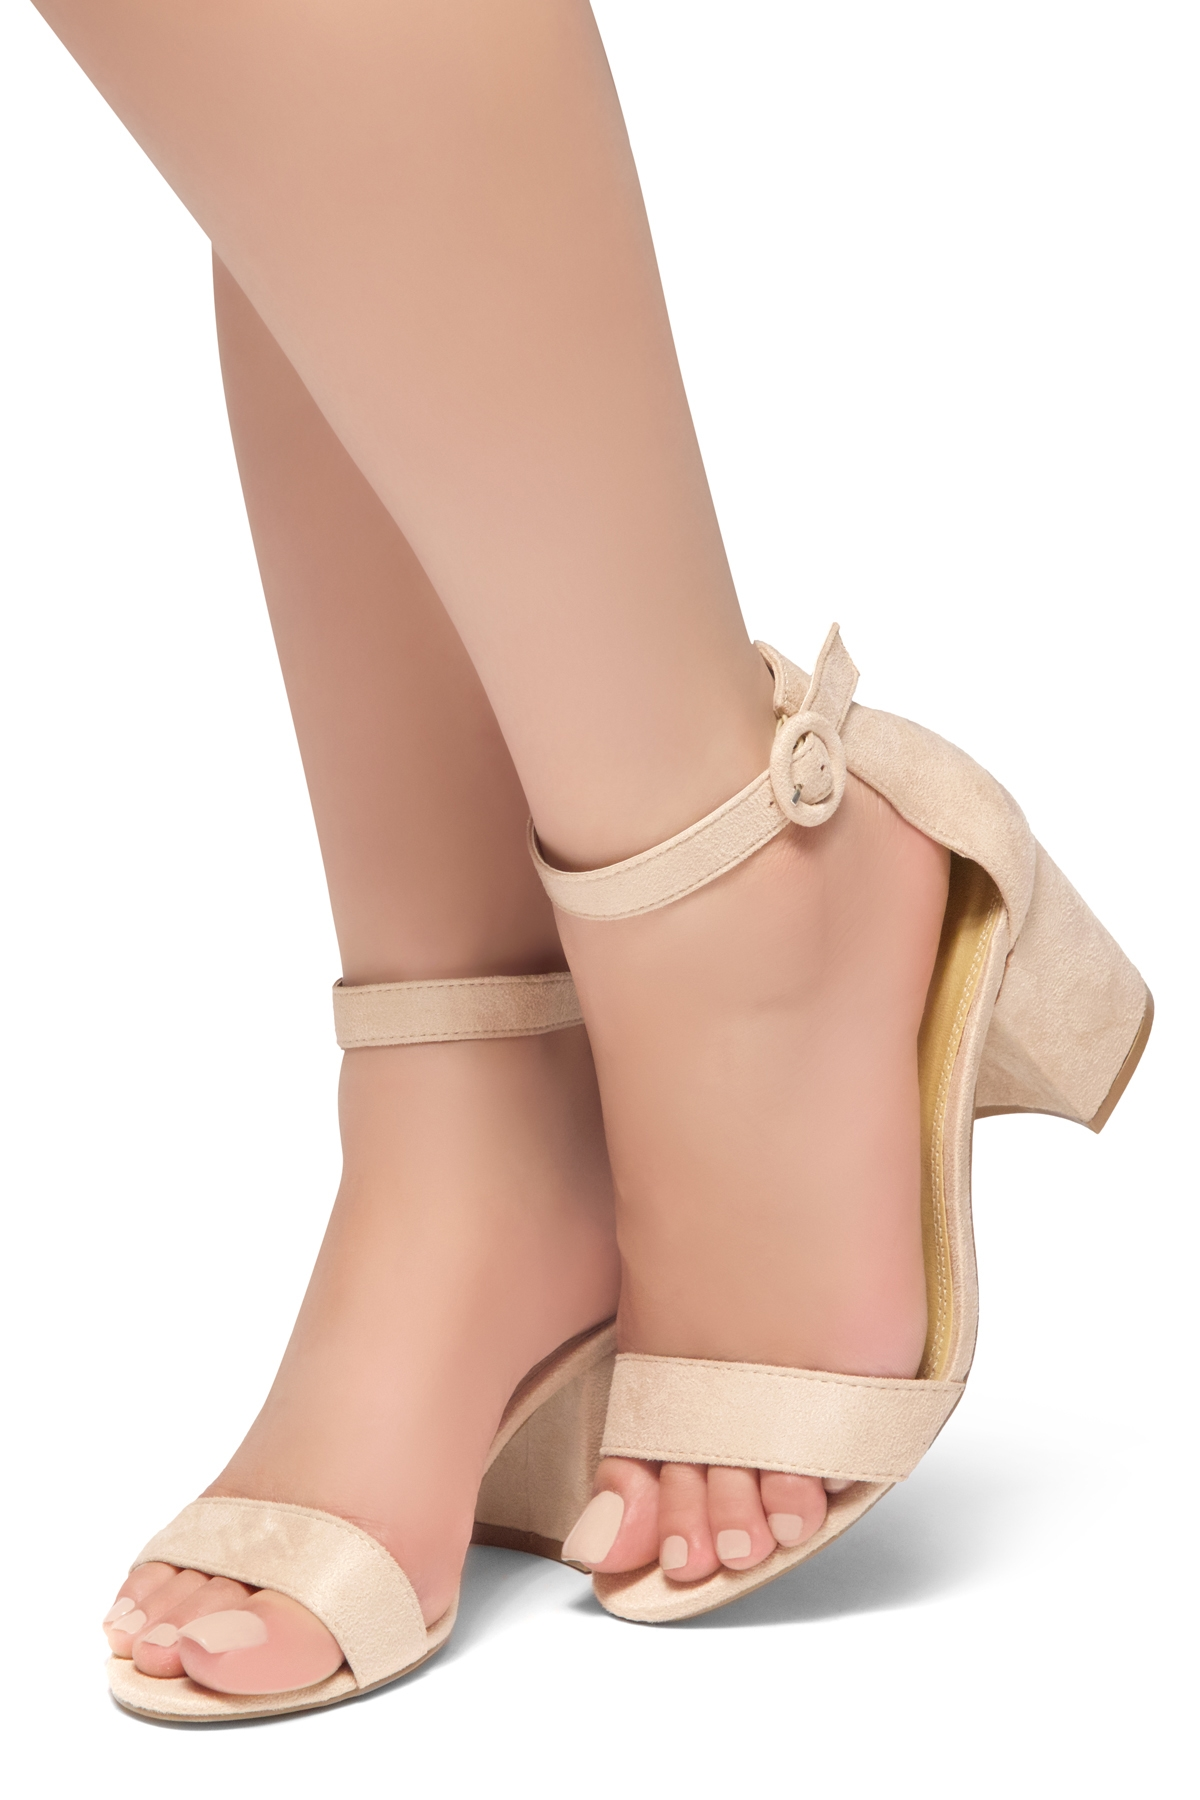 9d03b68816c HerStyle OUT SHINING- Ankle Strap, Buckled, Open Toe, Block Heel (Nude)